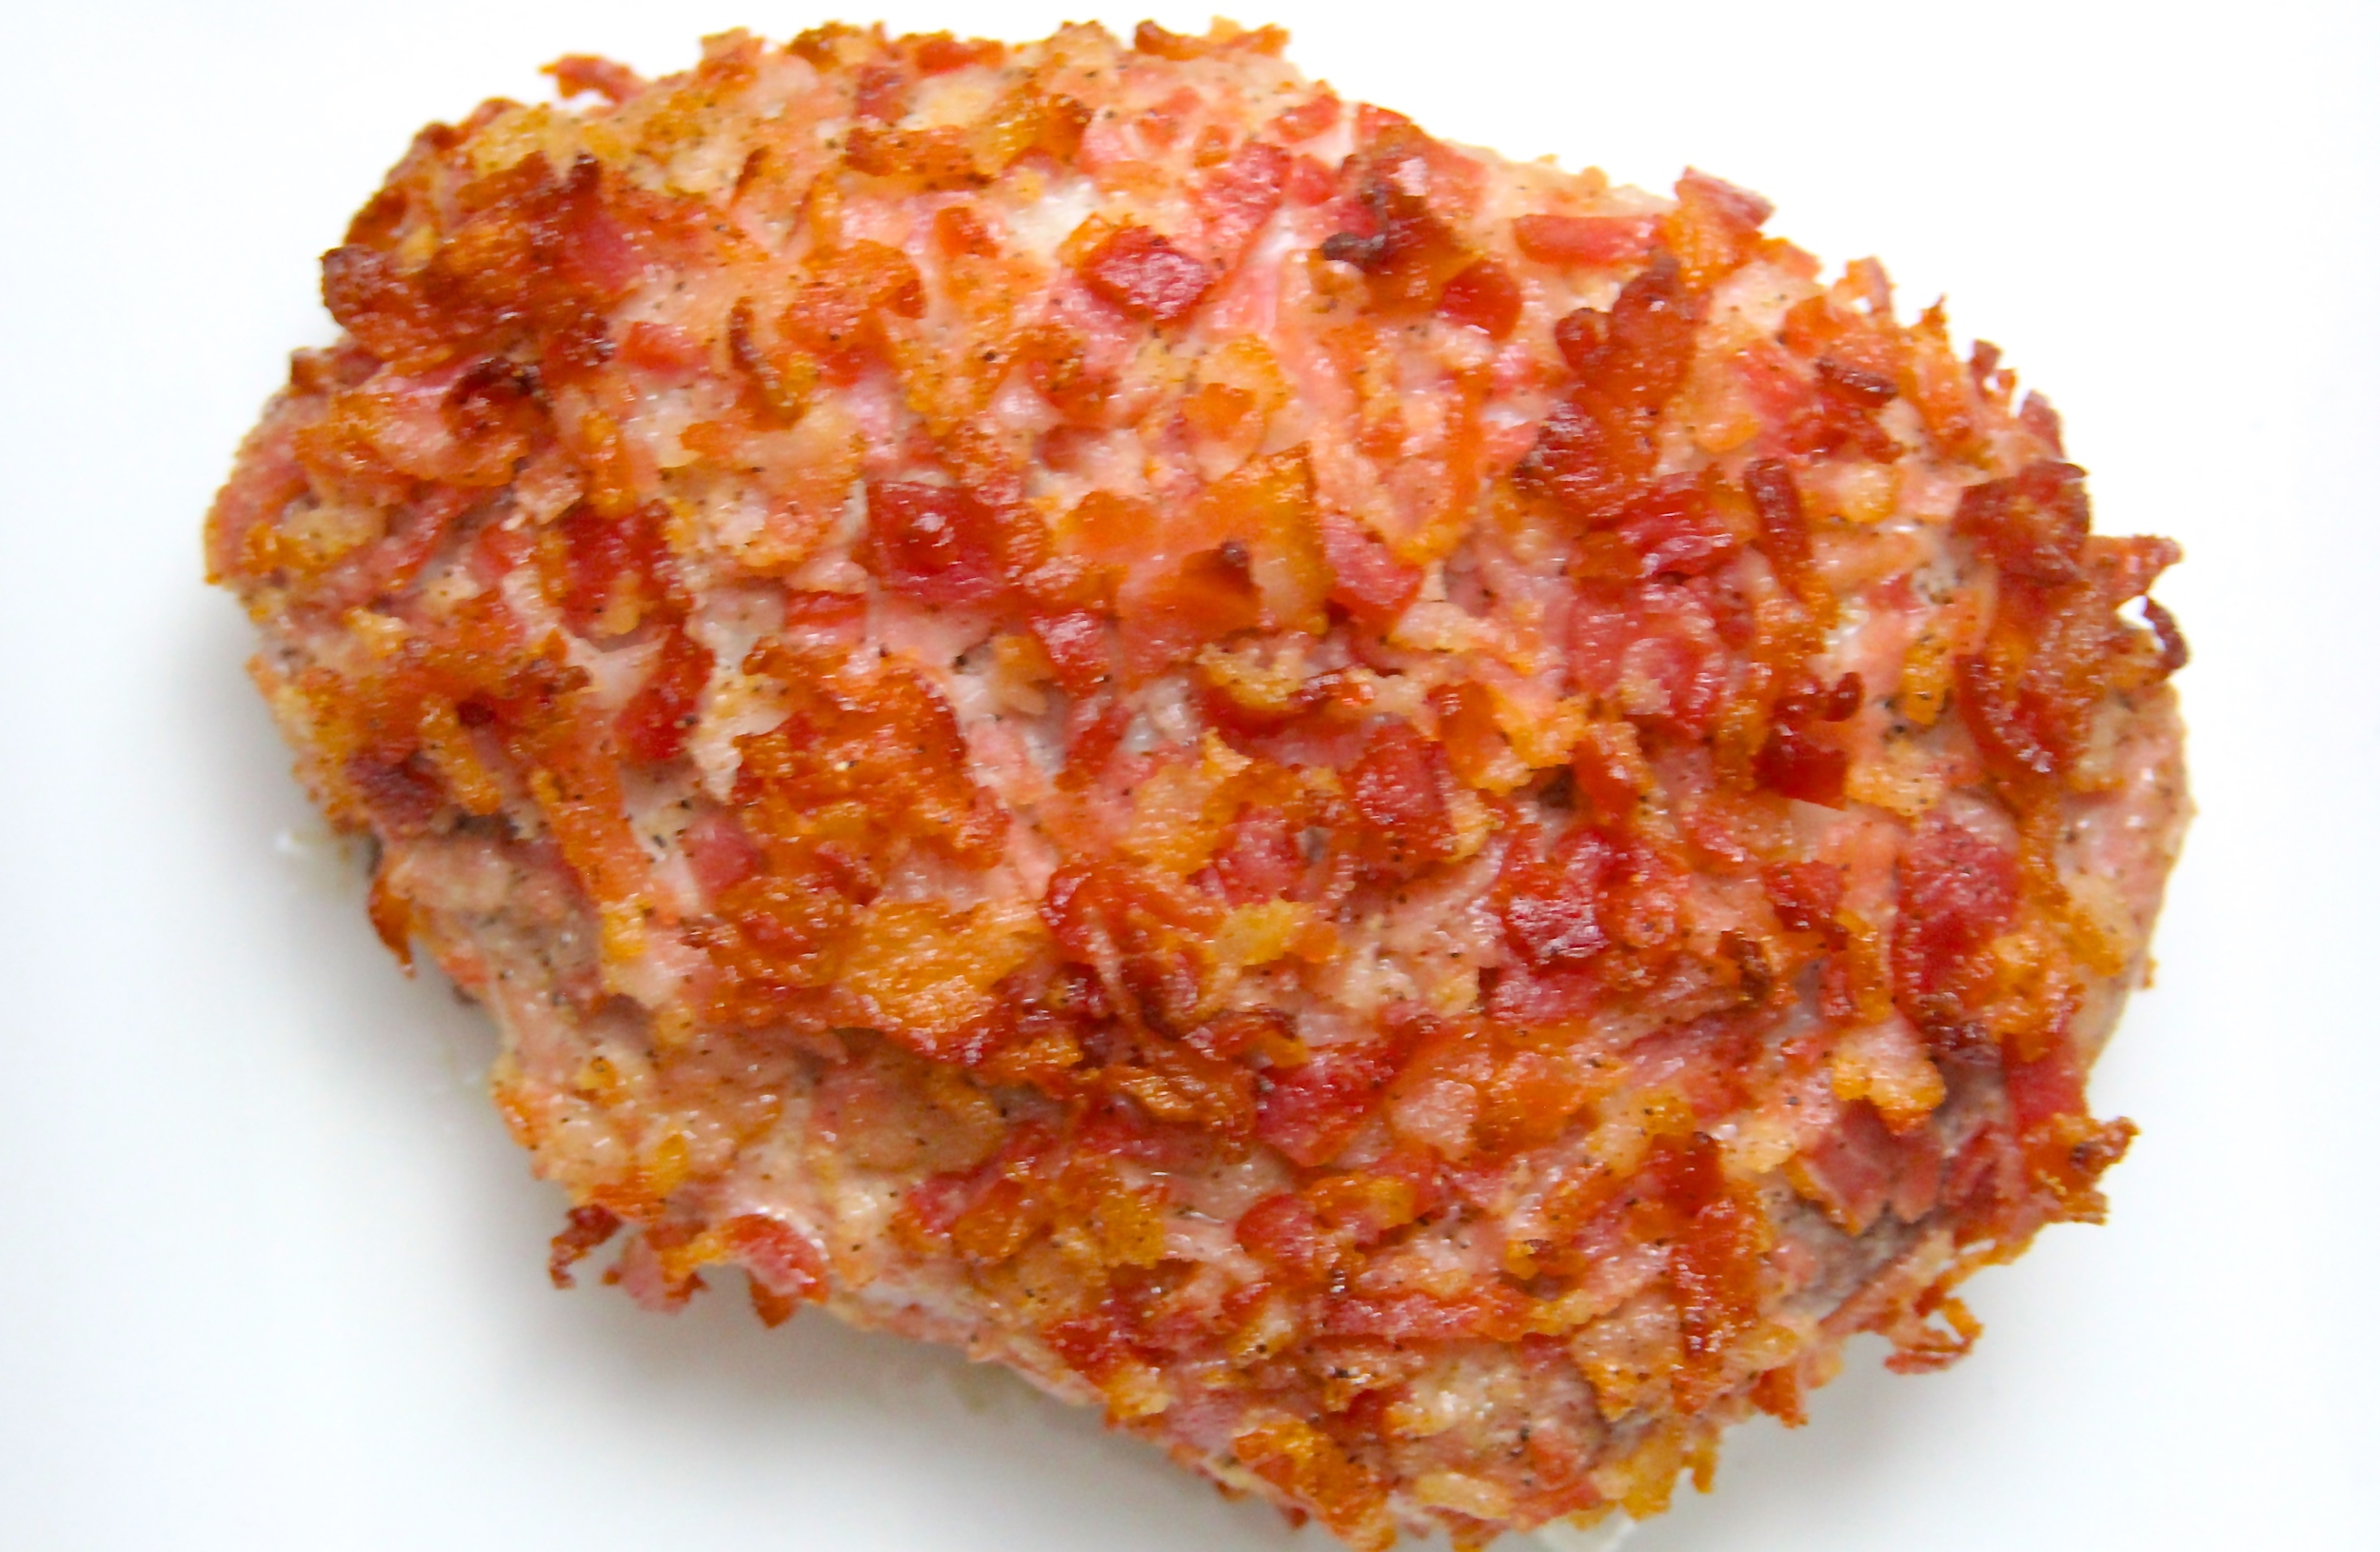 Grilled Bacon Crusted Pork Chop